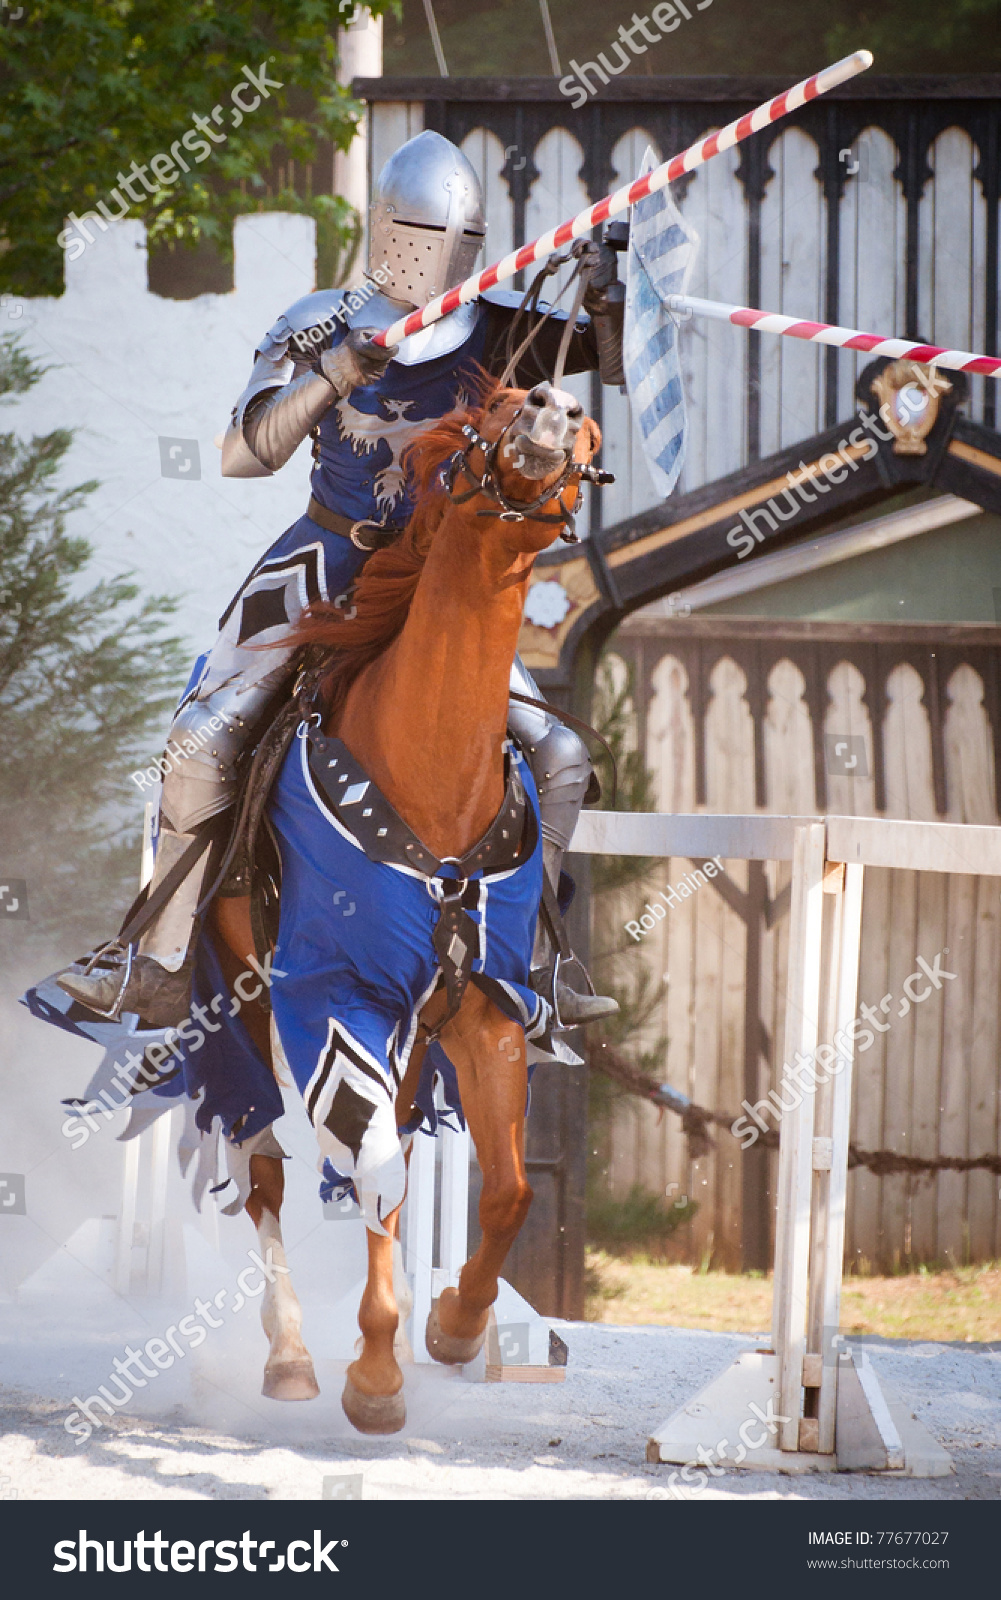 Performers at The Georgia Renaissance Festival include acrobats, jugglers, magicians, dancers and wandering minstrels. In addition to live entertainment, the renaissance festival in Atlanta features games, rides and children's activities, among them a haunted ship and a rock climbing wall.